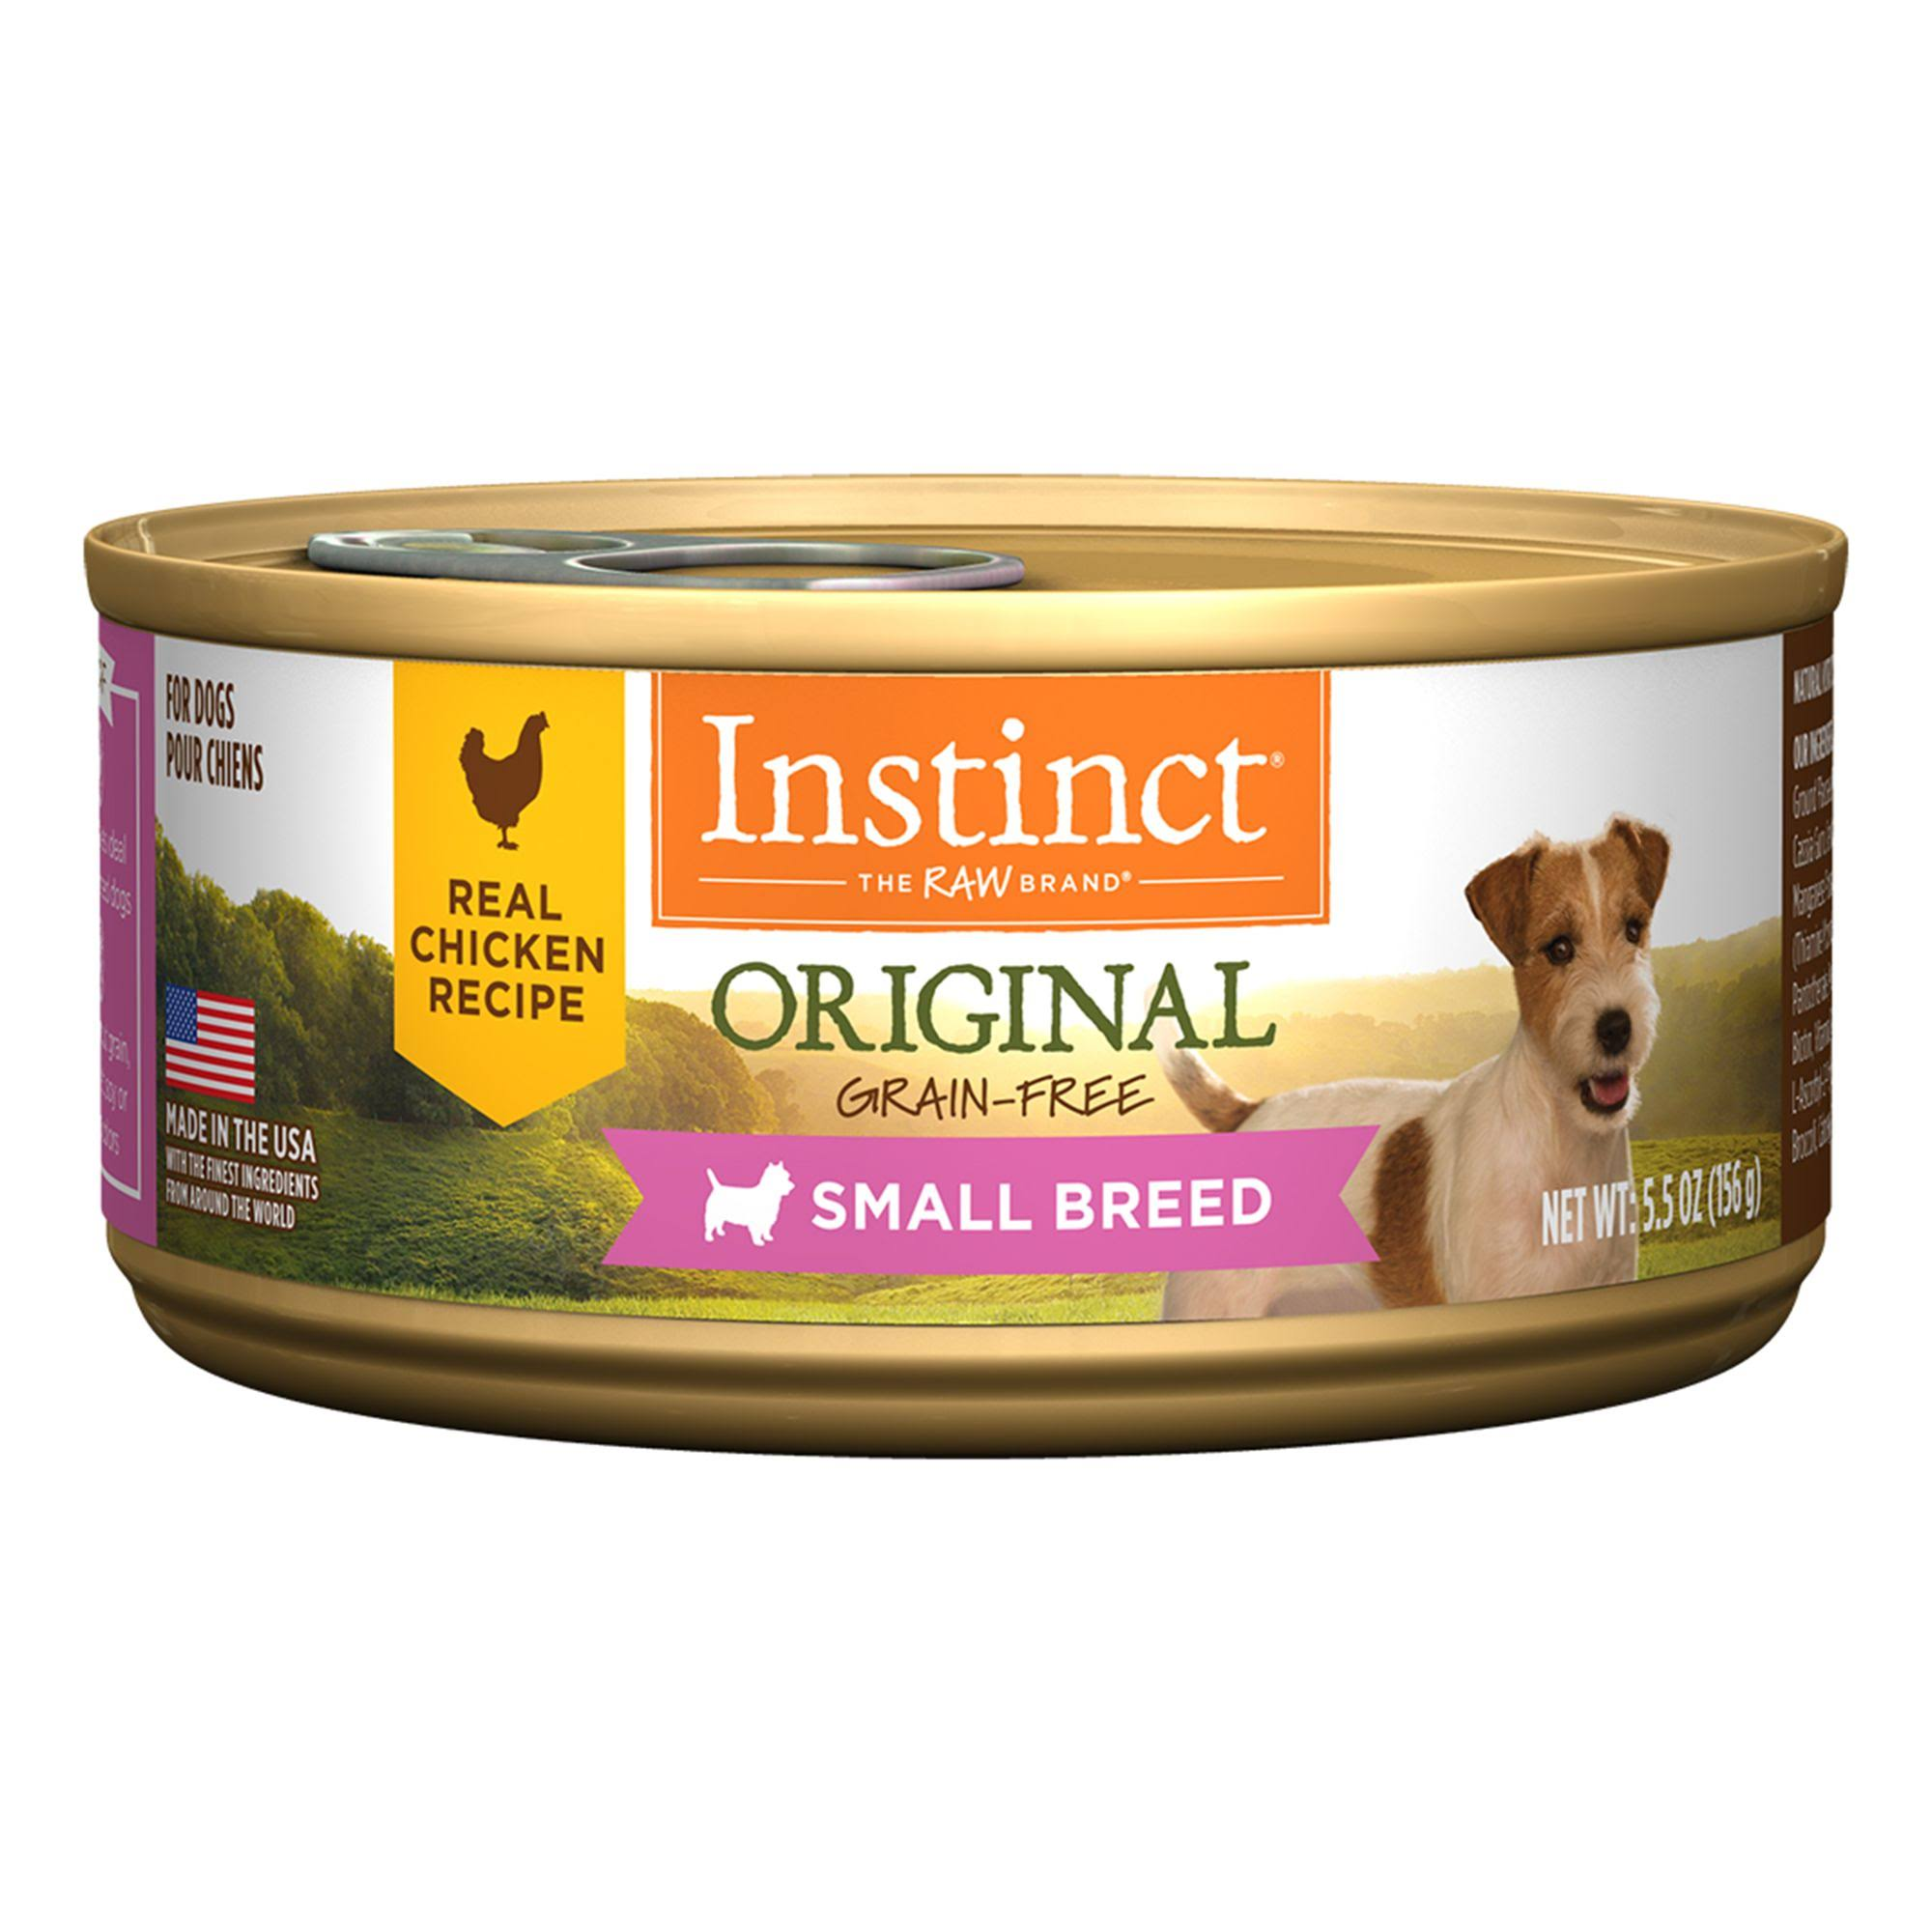 Nature's Variety Instinct Grain Free Small Breed Chicken Formula Dog Food - 5.5oz